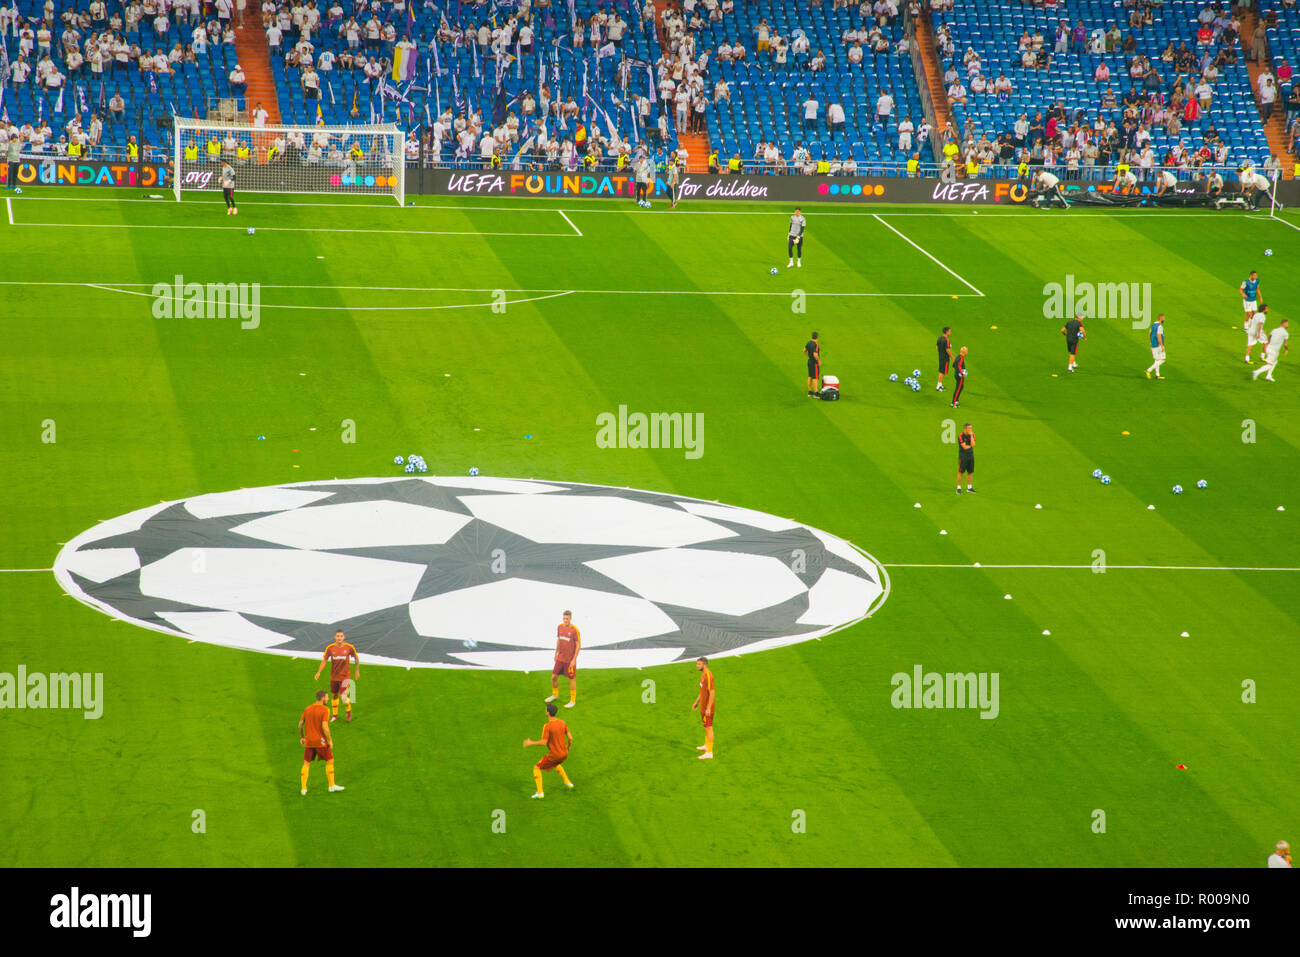 Warm-up exercises before football match. Champions League, Santiago Bernabeu stadium, Madrid, Spain. - Stock Image